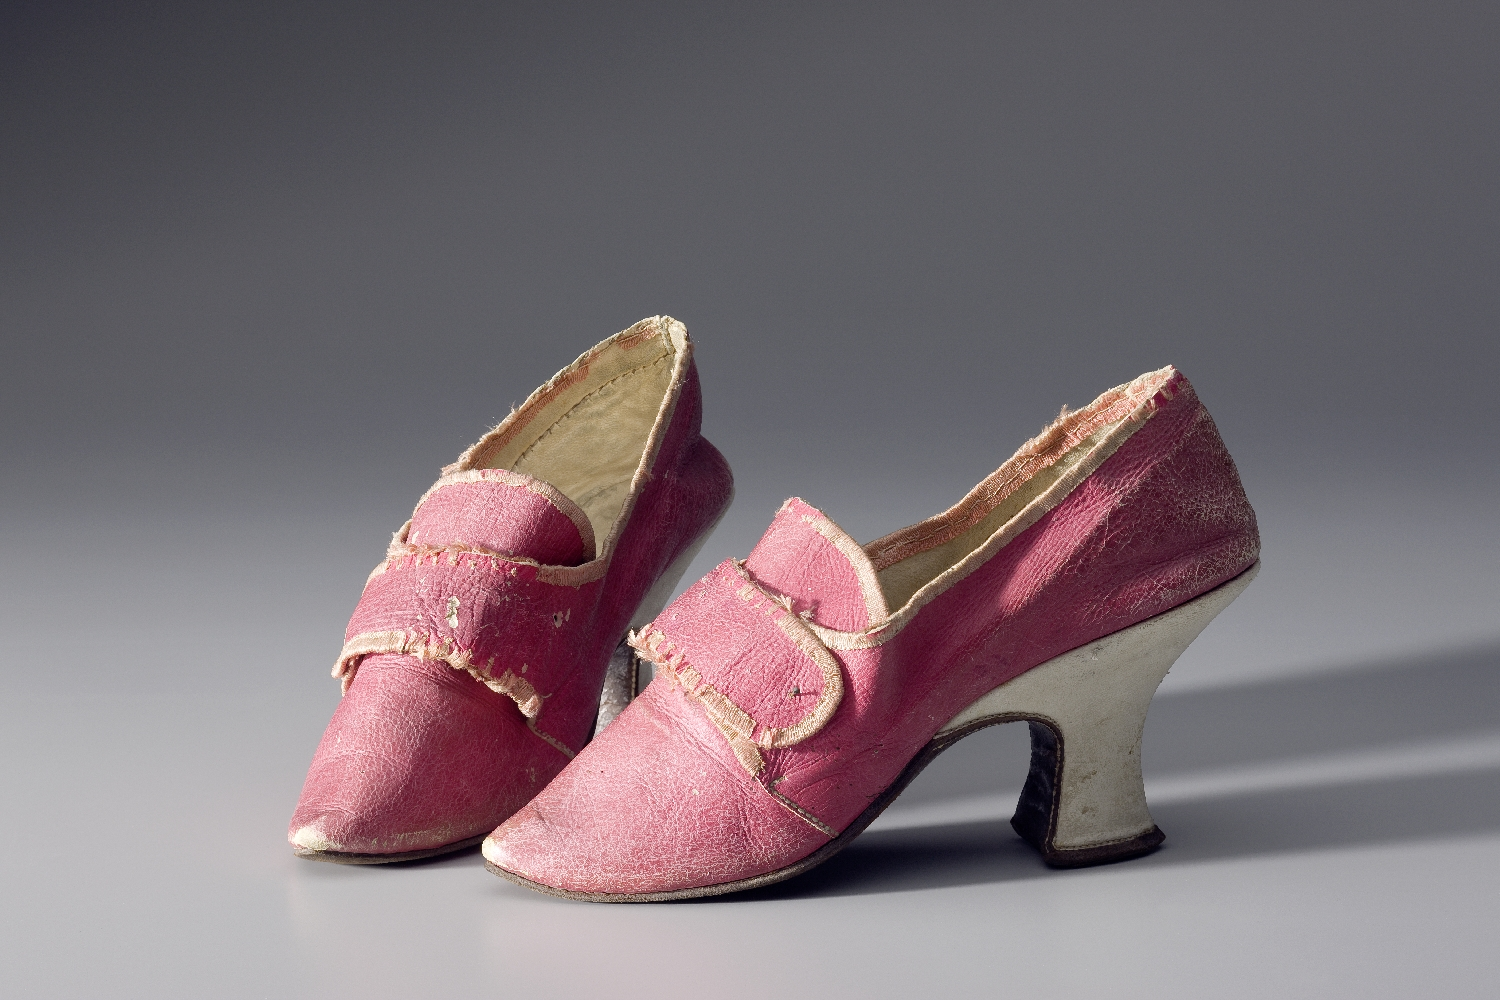 Lady's shoes, late 17th/early 18th c., leather, silk, inv. no. K 1715-49